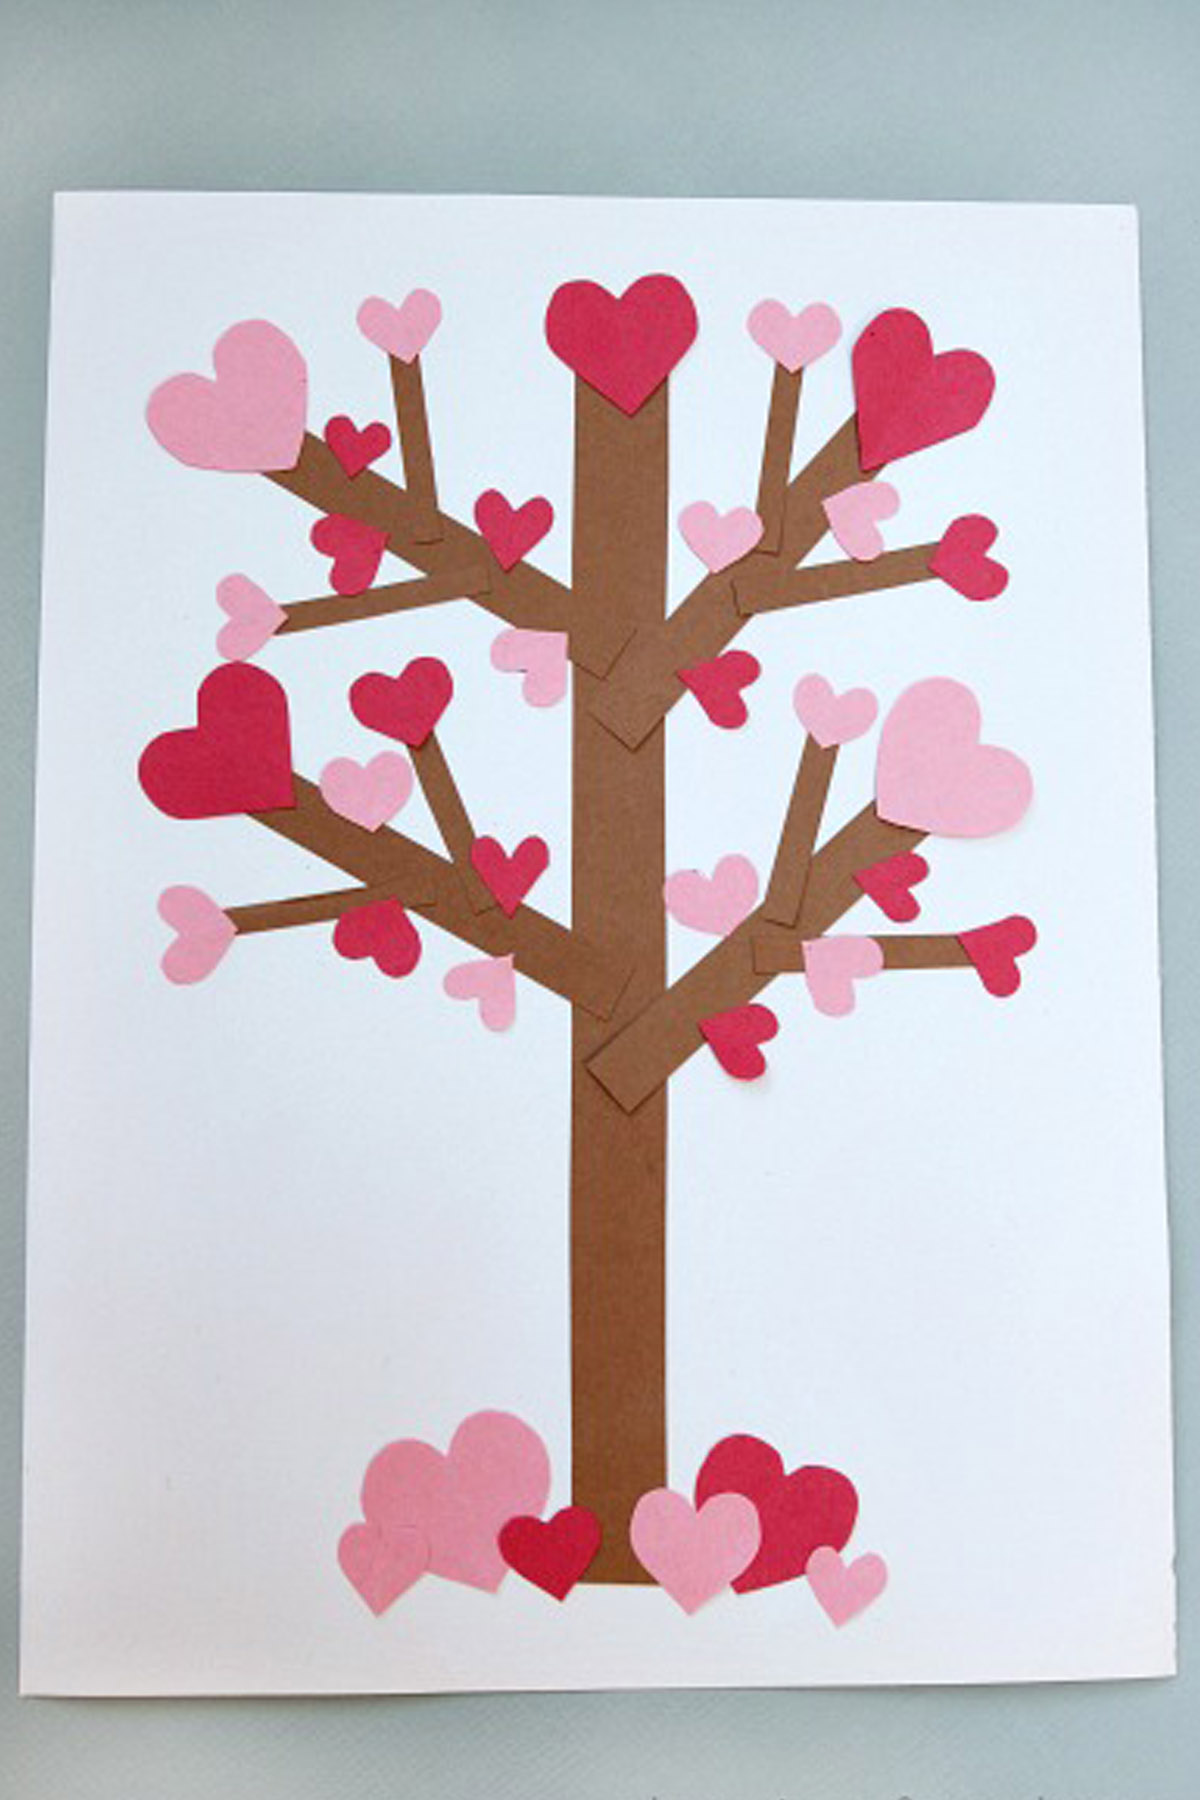 20 valentine 39 s day crafts for kids fun heart arts and for Craft ideas for valentines day